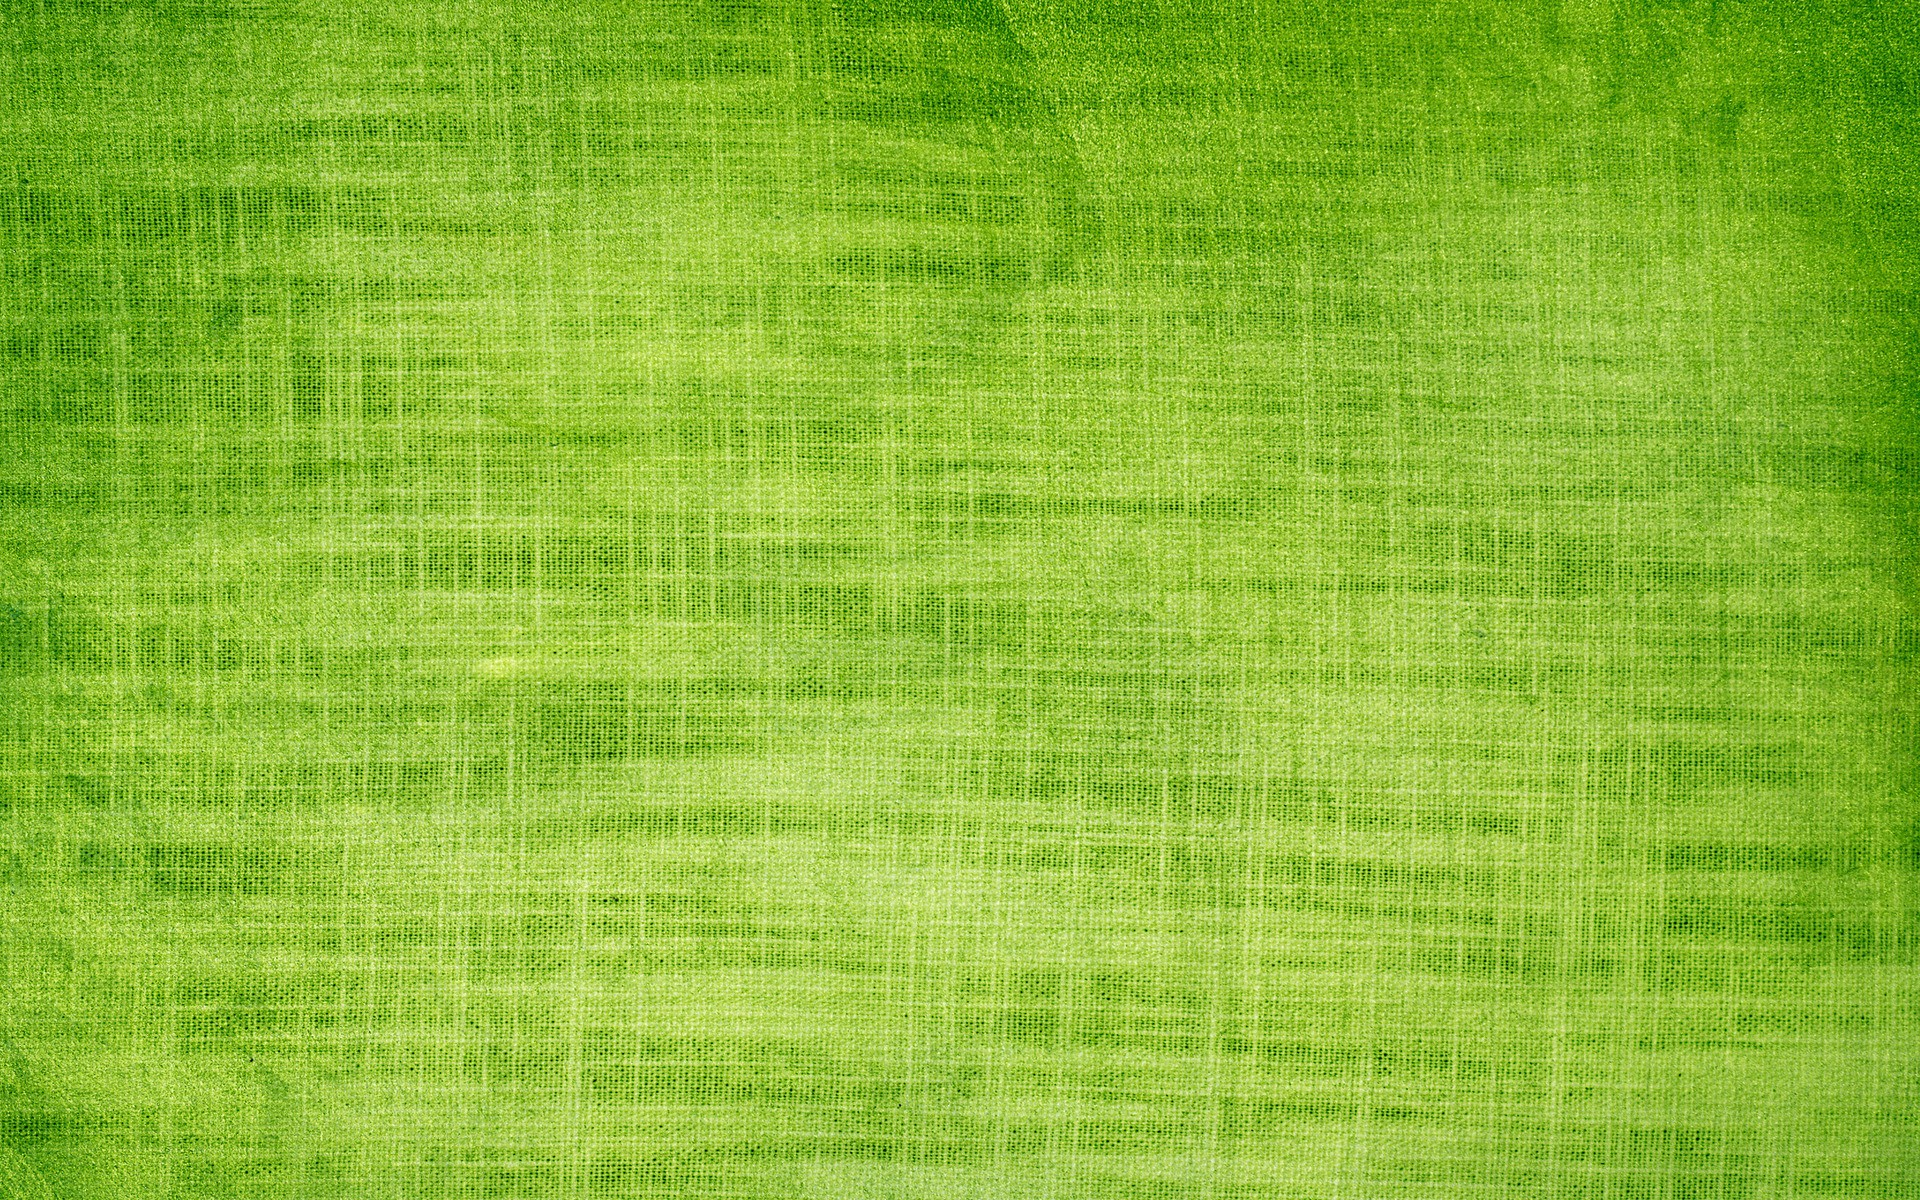 green-wallpaper-6